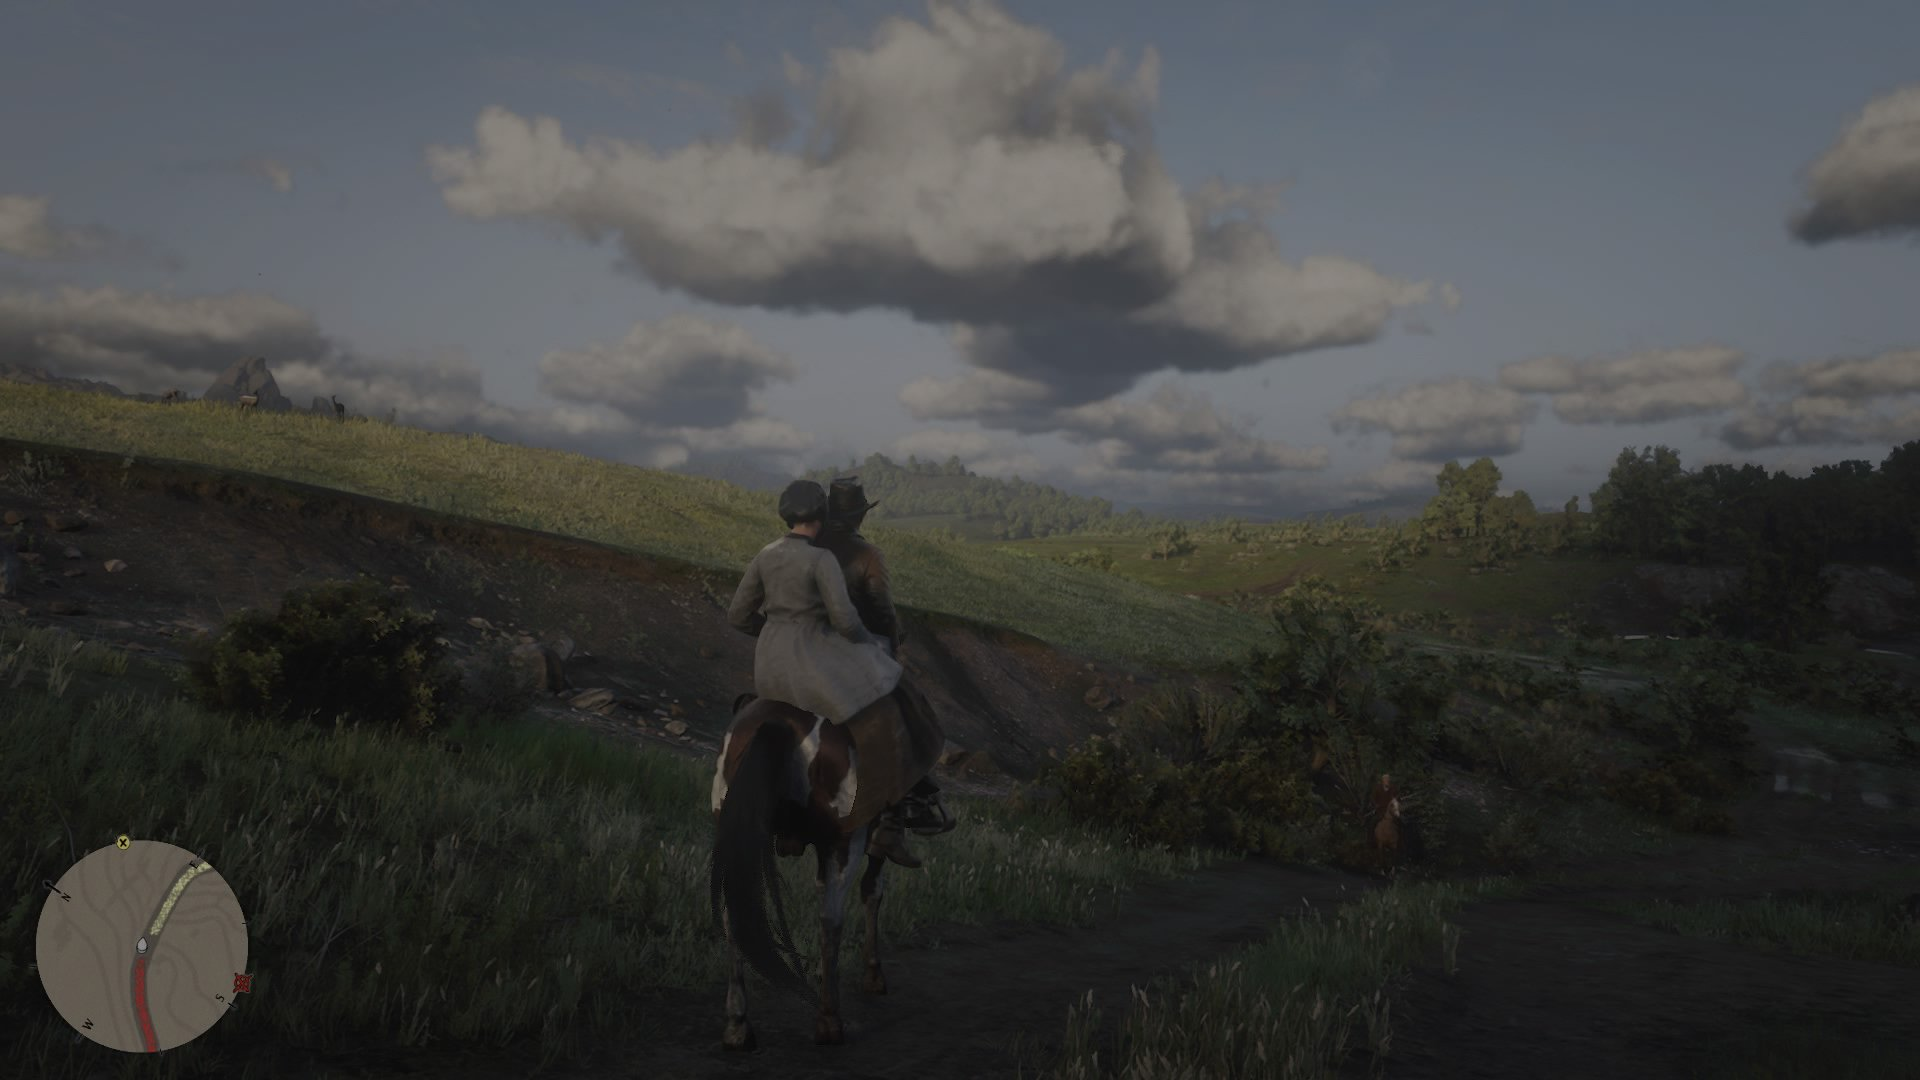 Red Dead Redemption 2 Honor: How to Quickly Raise Honor or